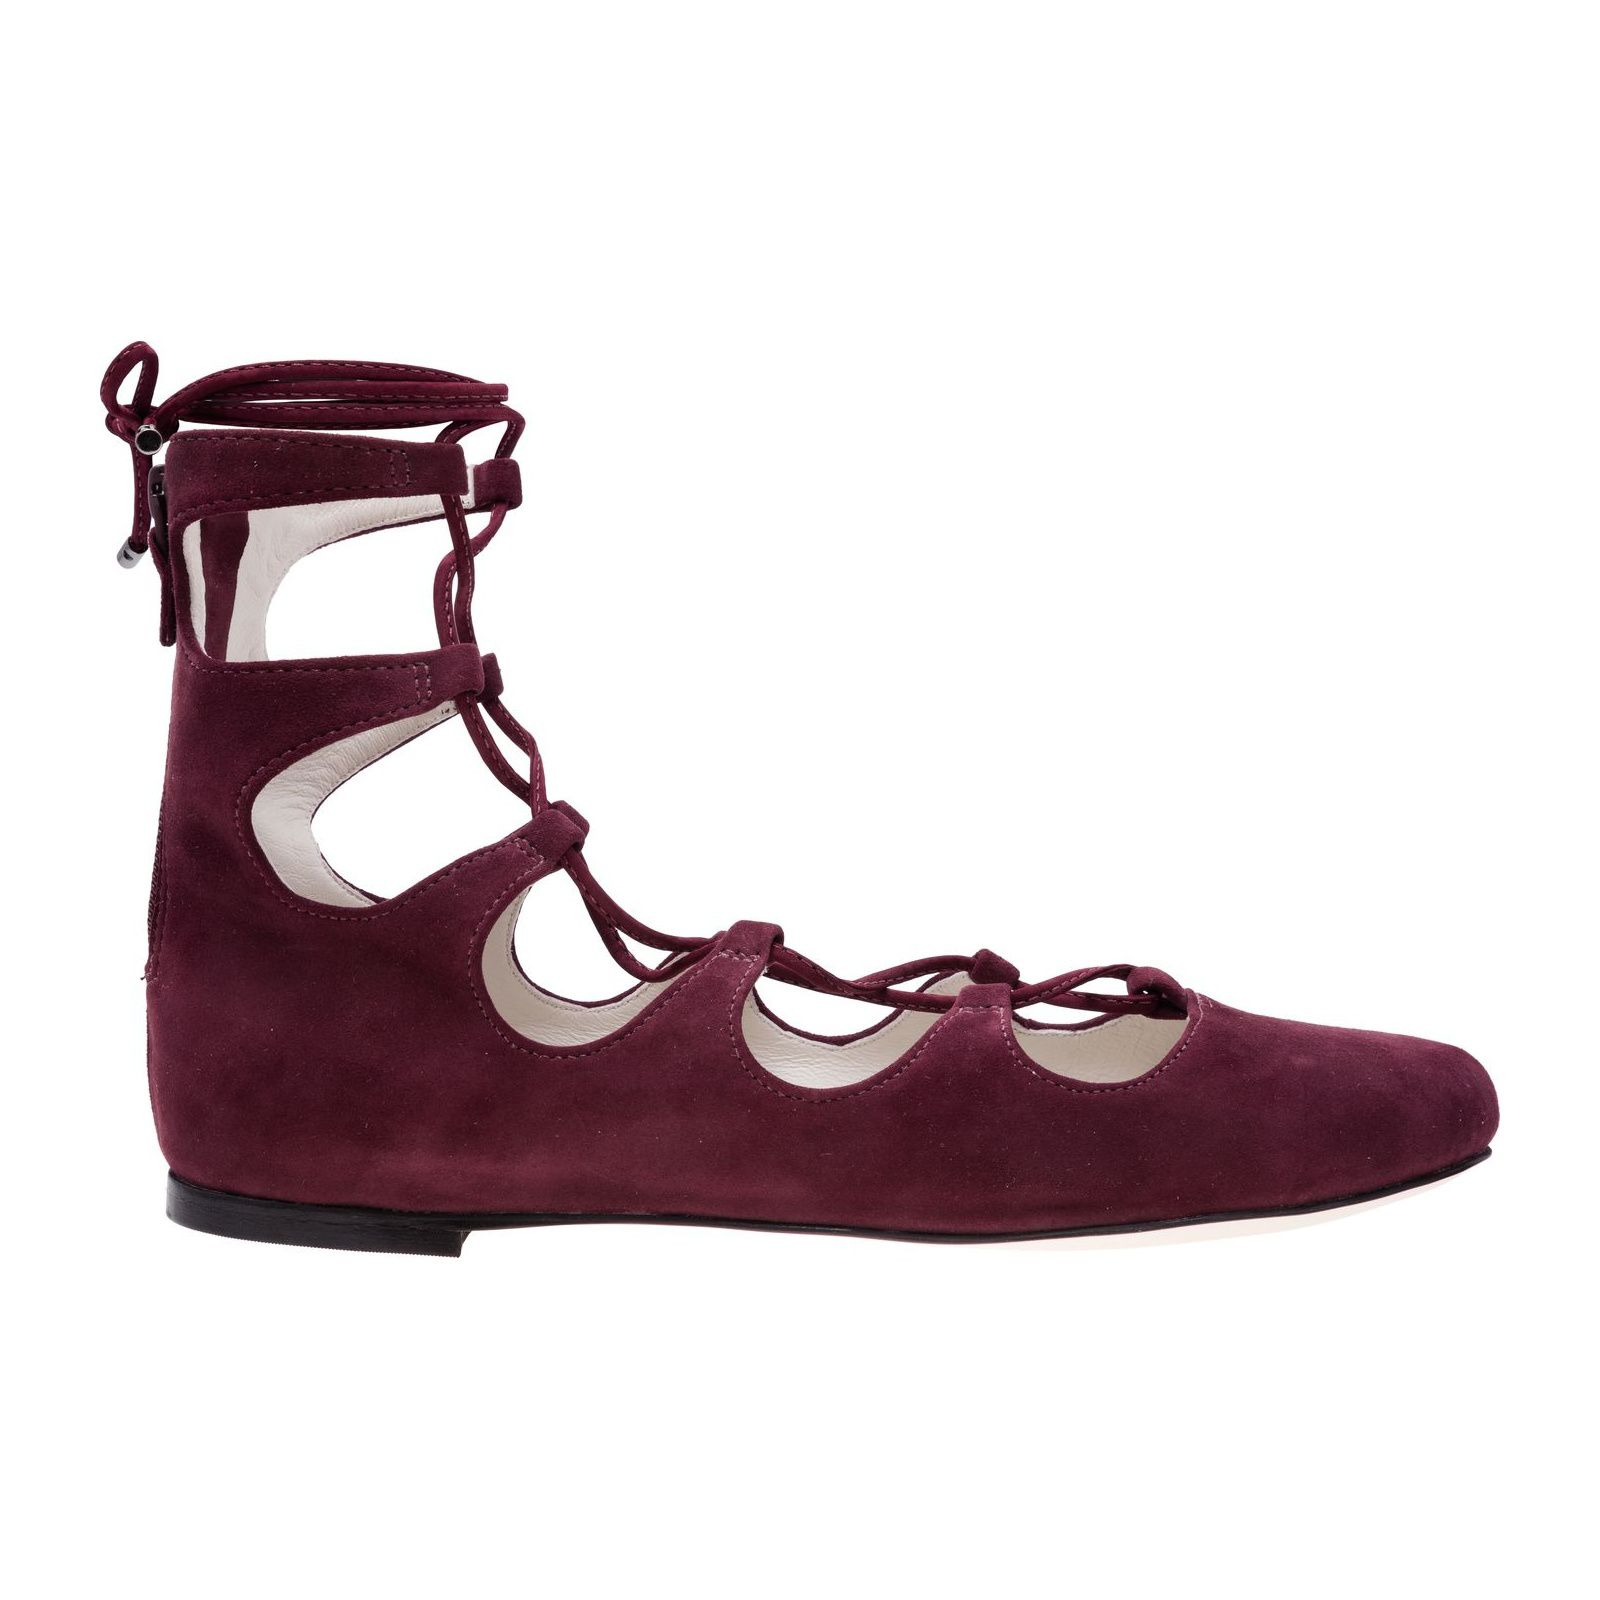 Sapatilha Lace Up Doll Vinci Shoes - Vinho